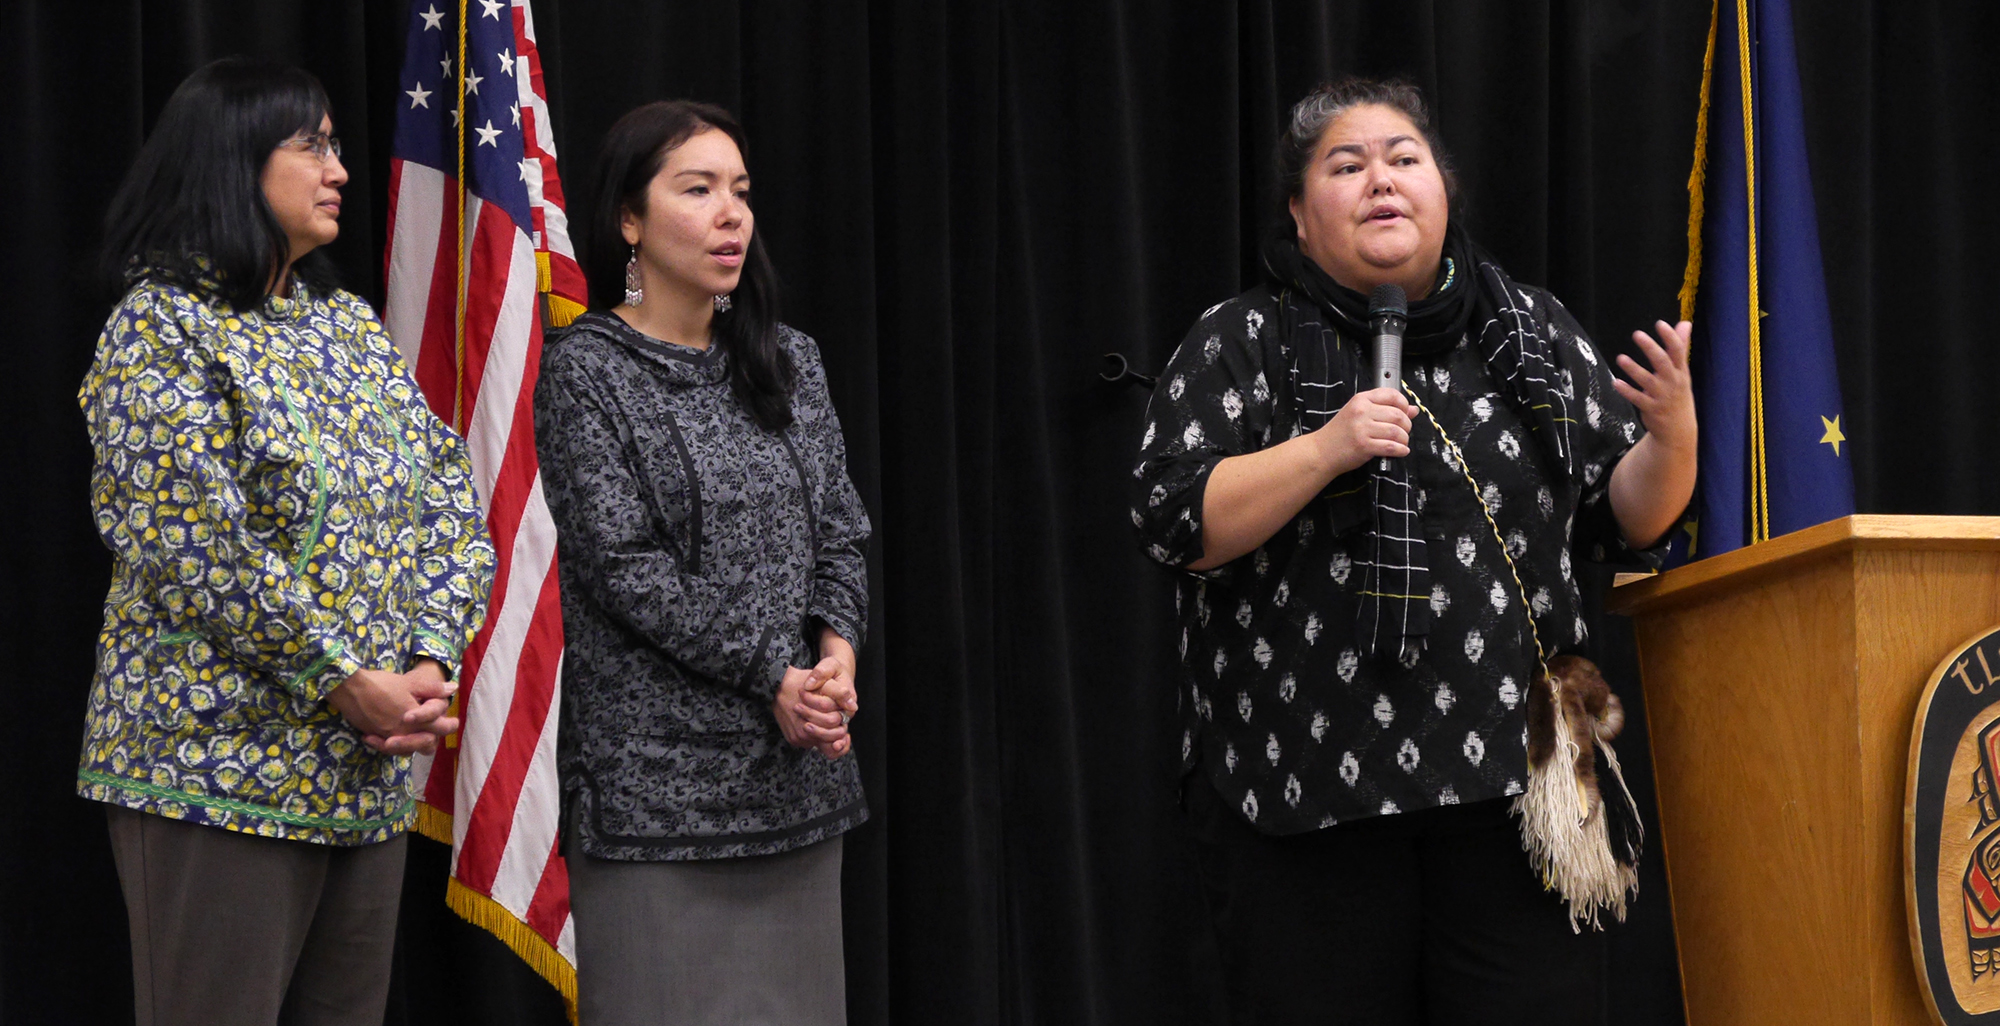 First Alaskans Institute officials discuss racism and reconciliation at the Elizabeth Peratrovich Hall on Thursday in Juneau. From the left are Angela Gonzales, Andrea Sanders and Liz Medicine Crow.(Photo by Skip Gray/360north)